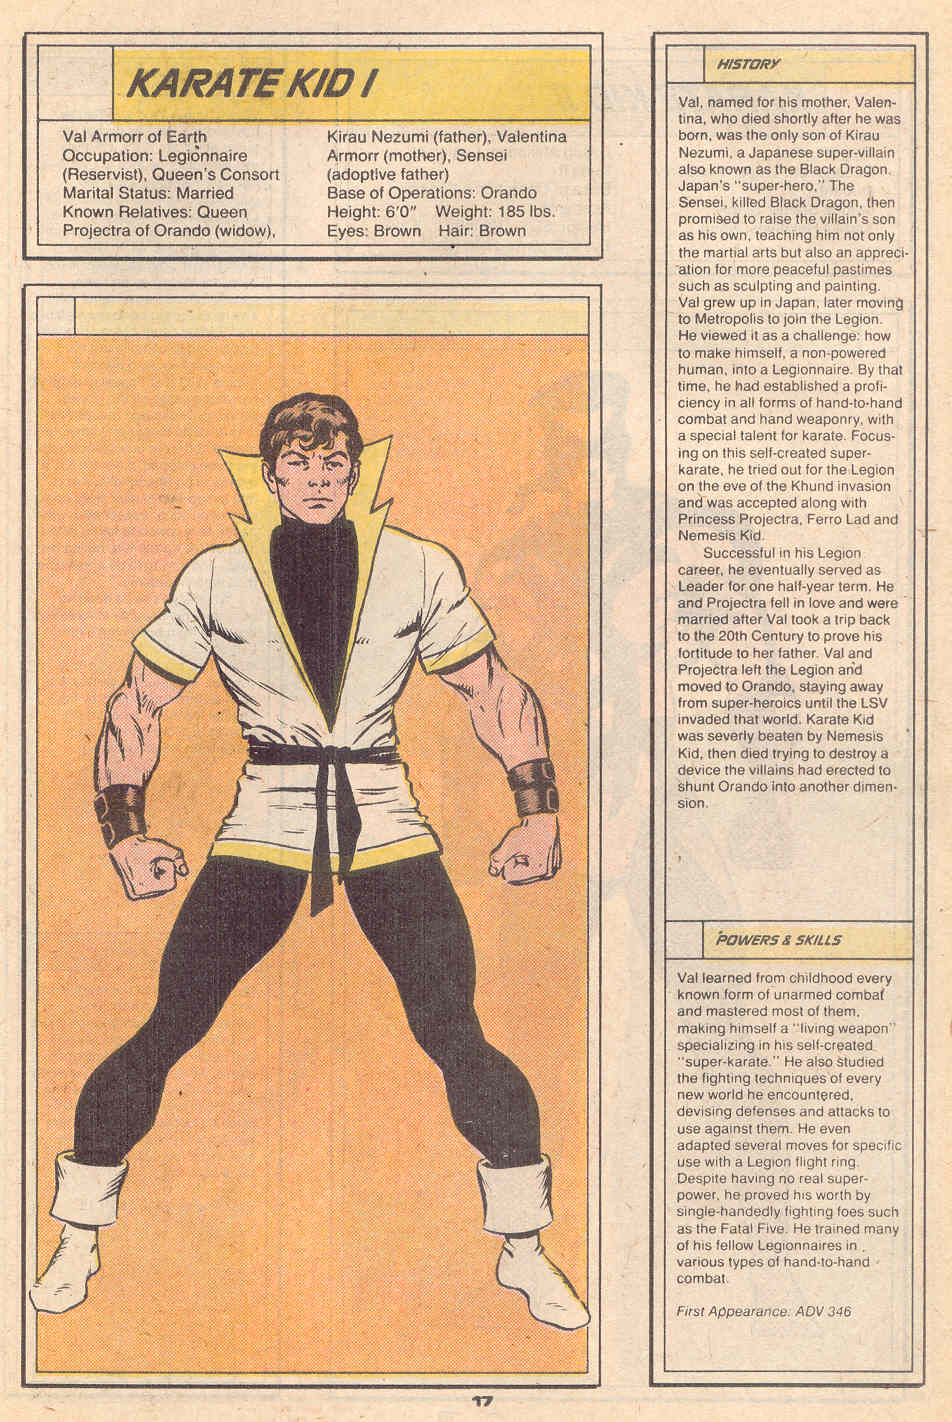 Karate Kid I by Dave Cockrum - Who's Who in the Legion of Super-Heroes #3